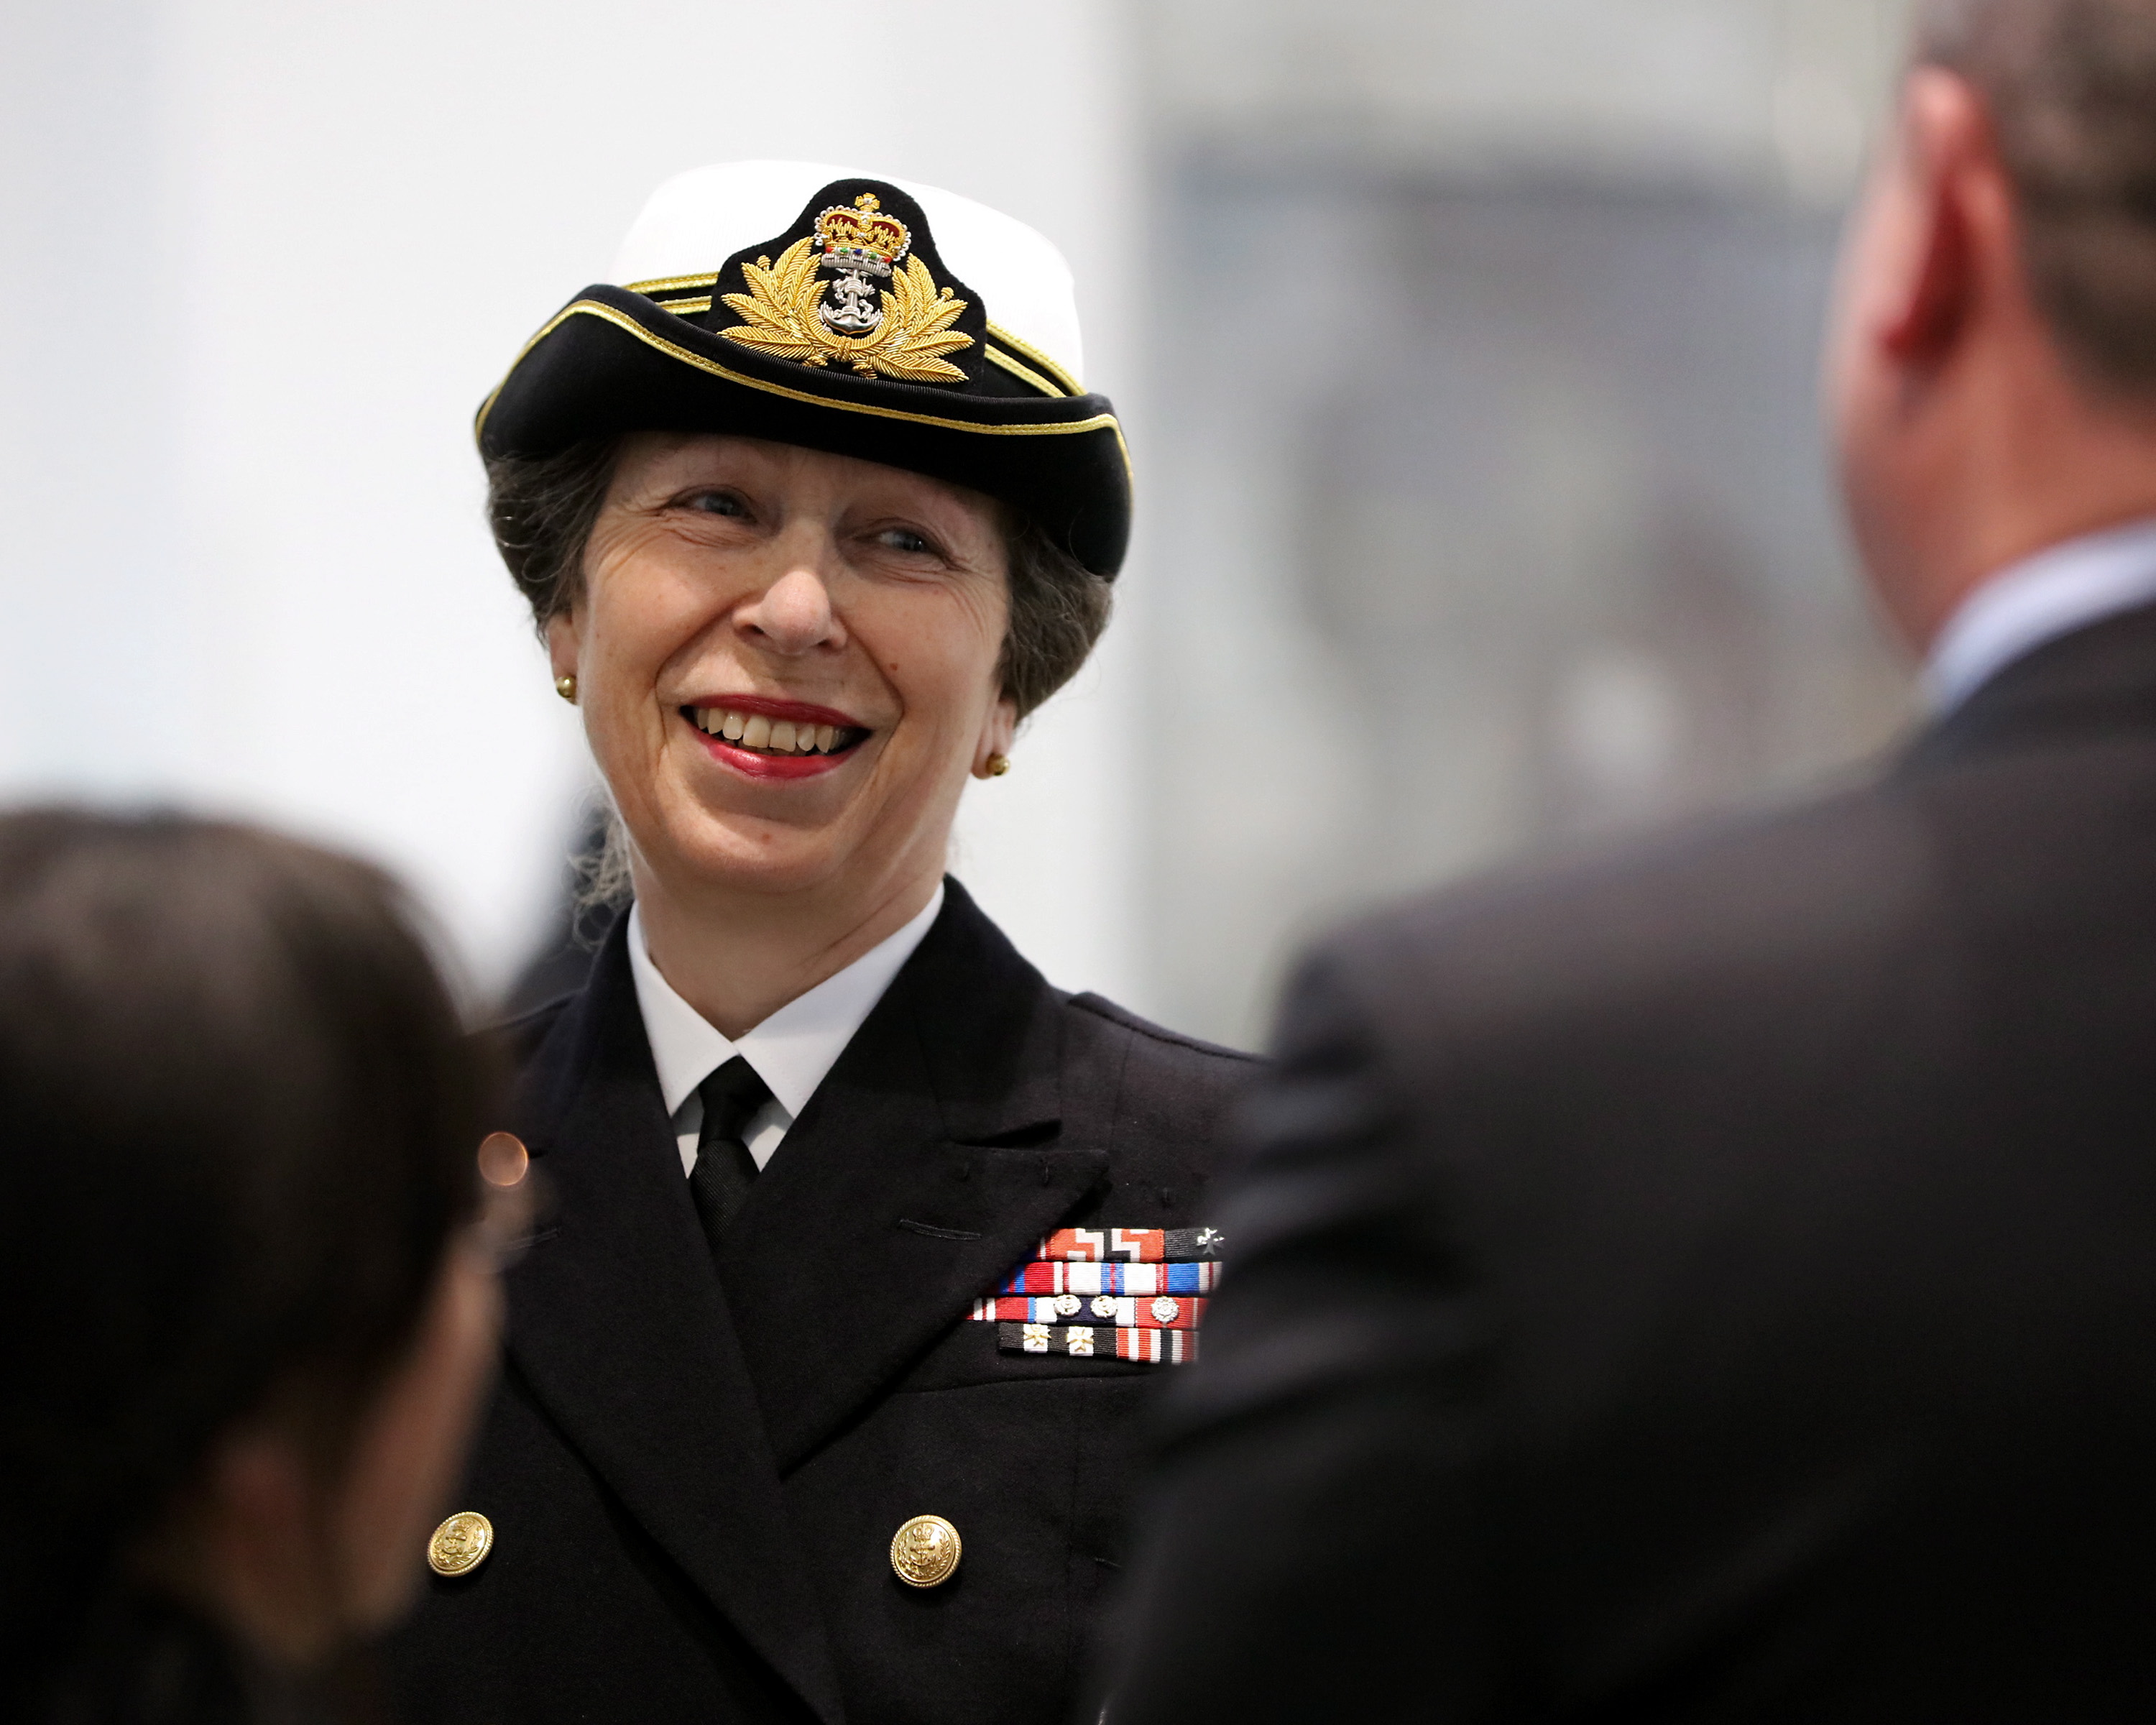 Her Royal Highness The Princess Royal has today officially named the jetty which will house the Royal Navy's giant new aircraft carriers in Portsmouth.